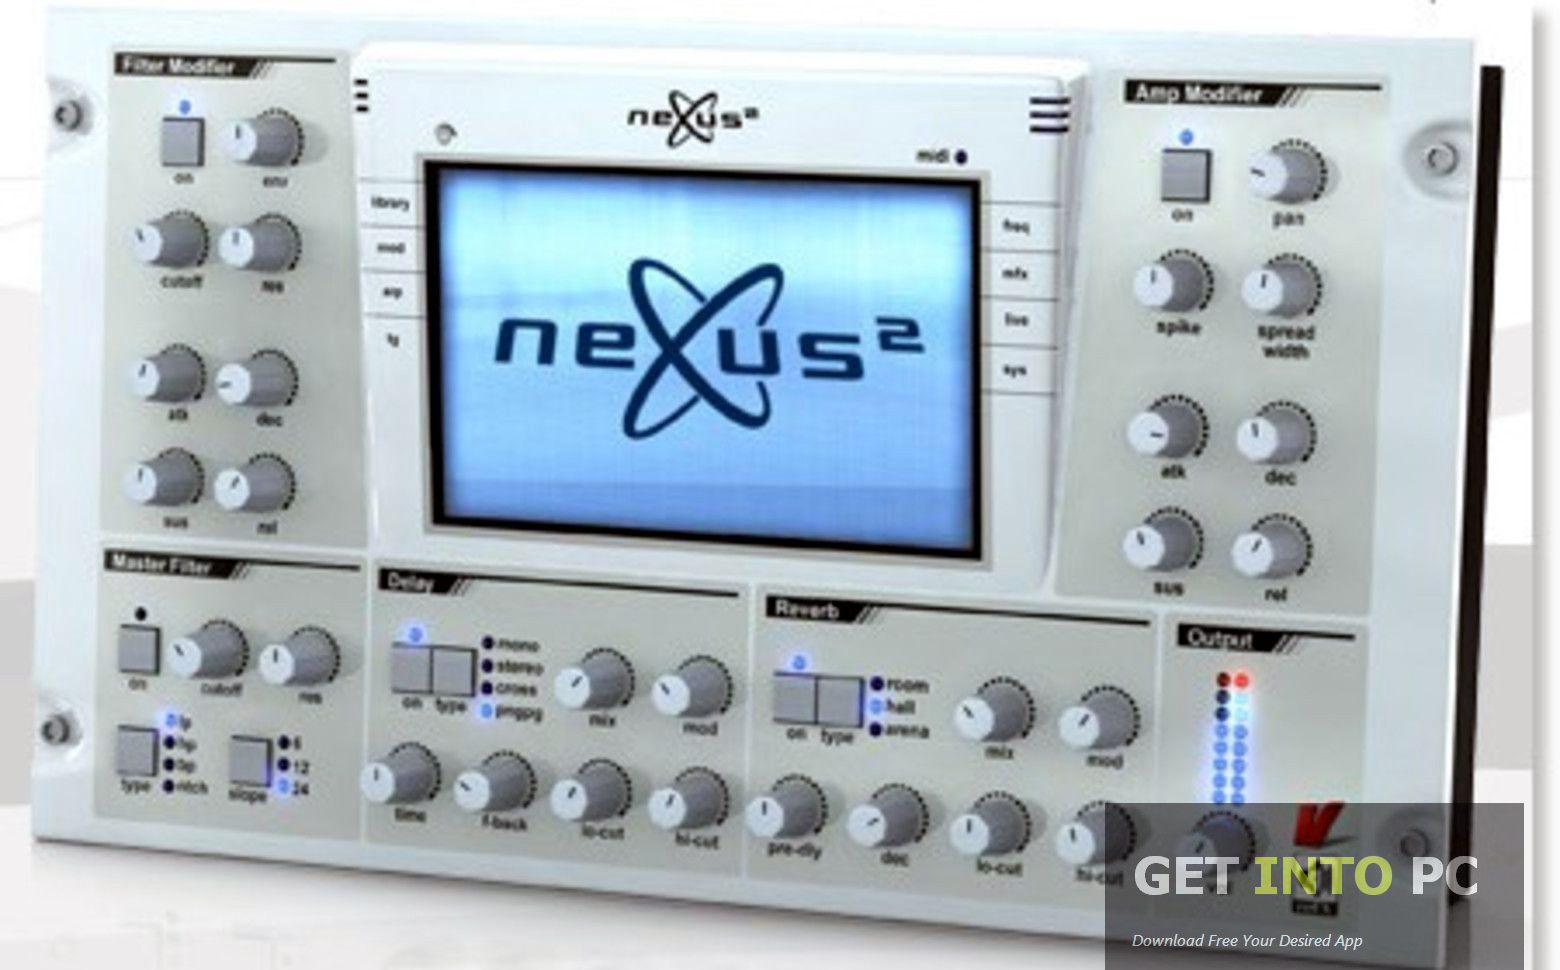 nexus plugin free download fl studio 10